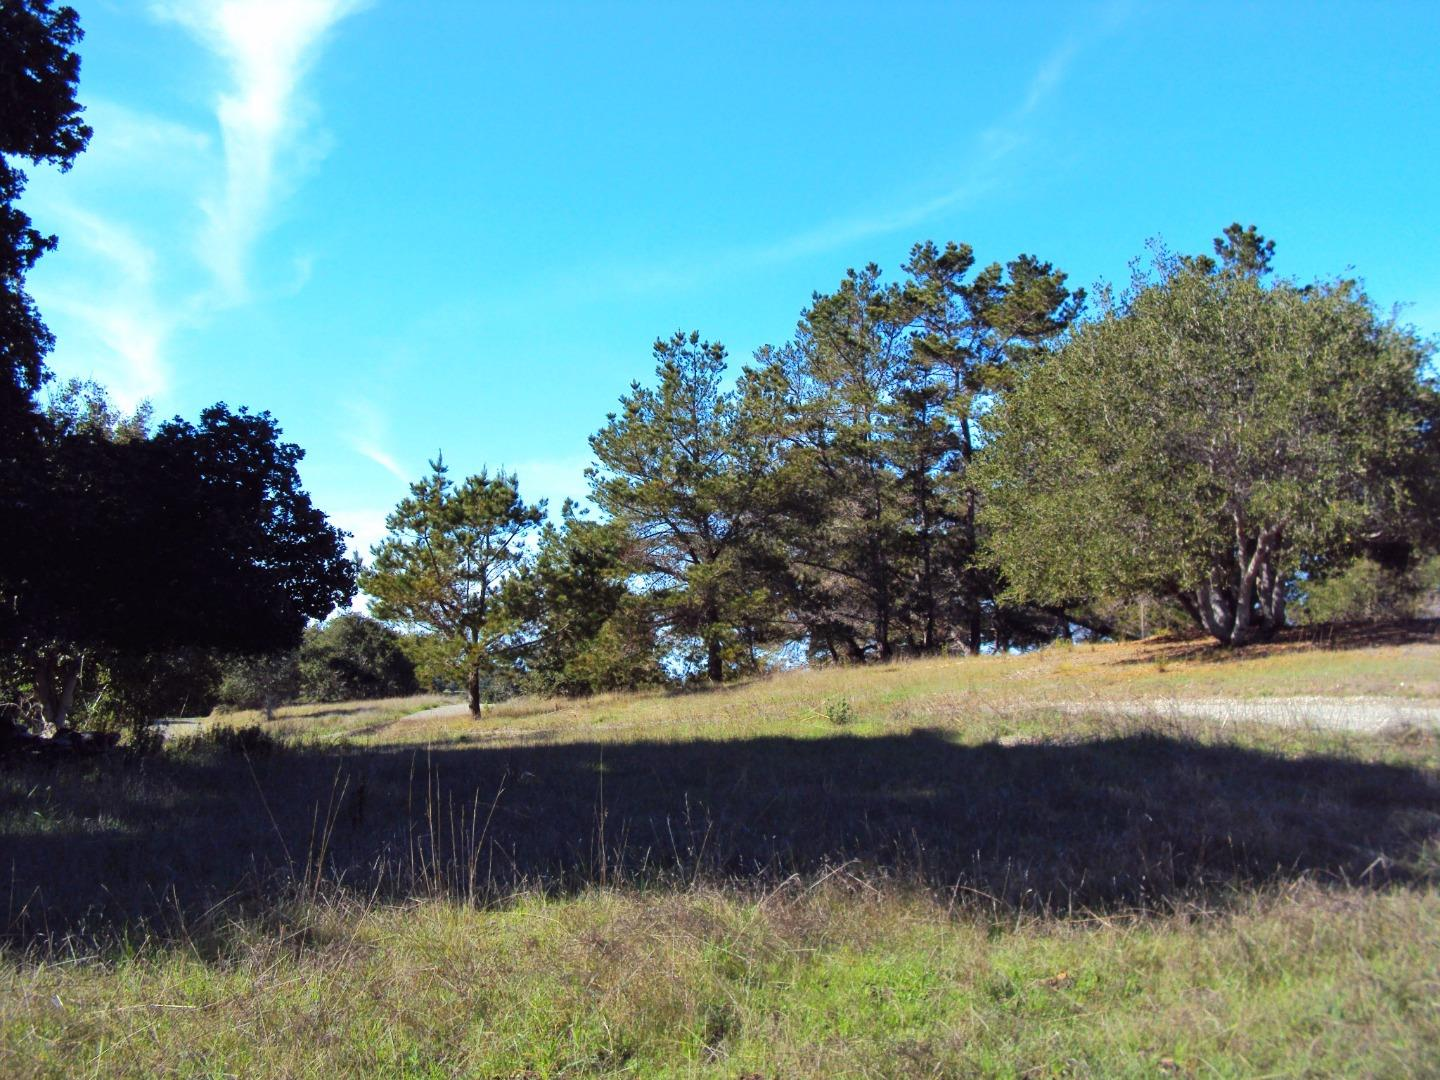 Land for Sale at Monterra Ranch Lot 1 Monterey, California 93940 United States